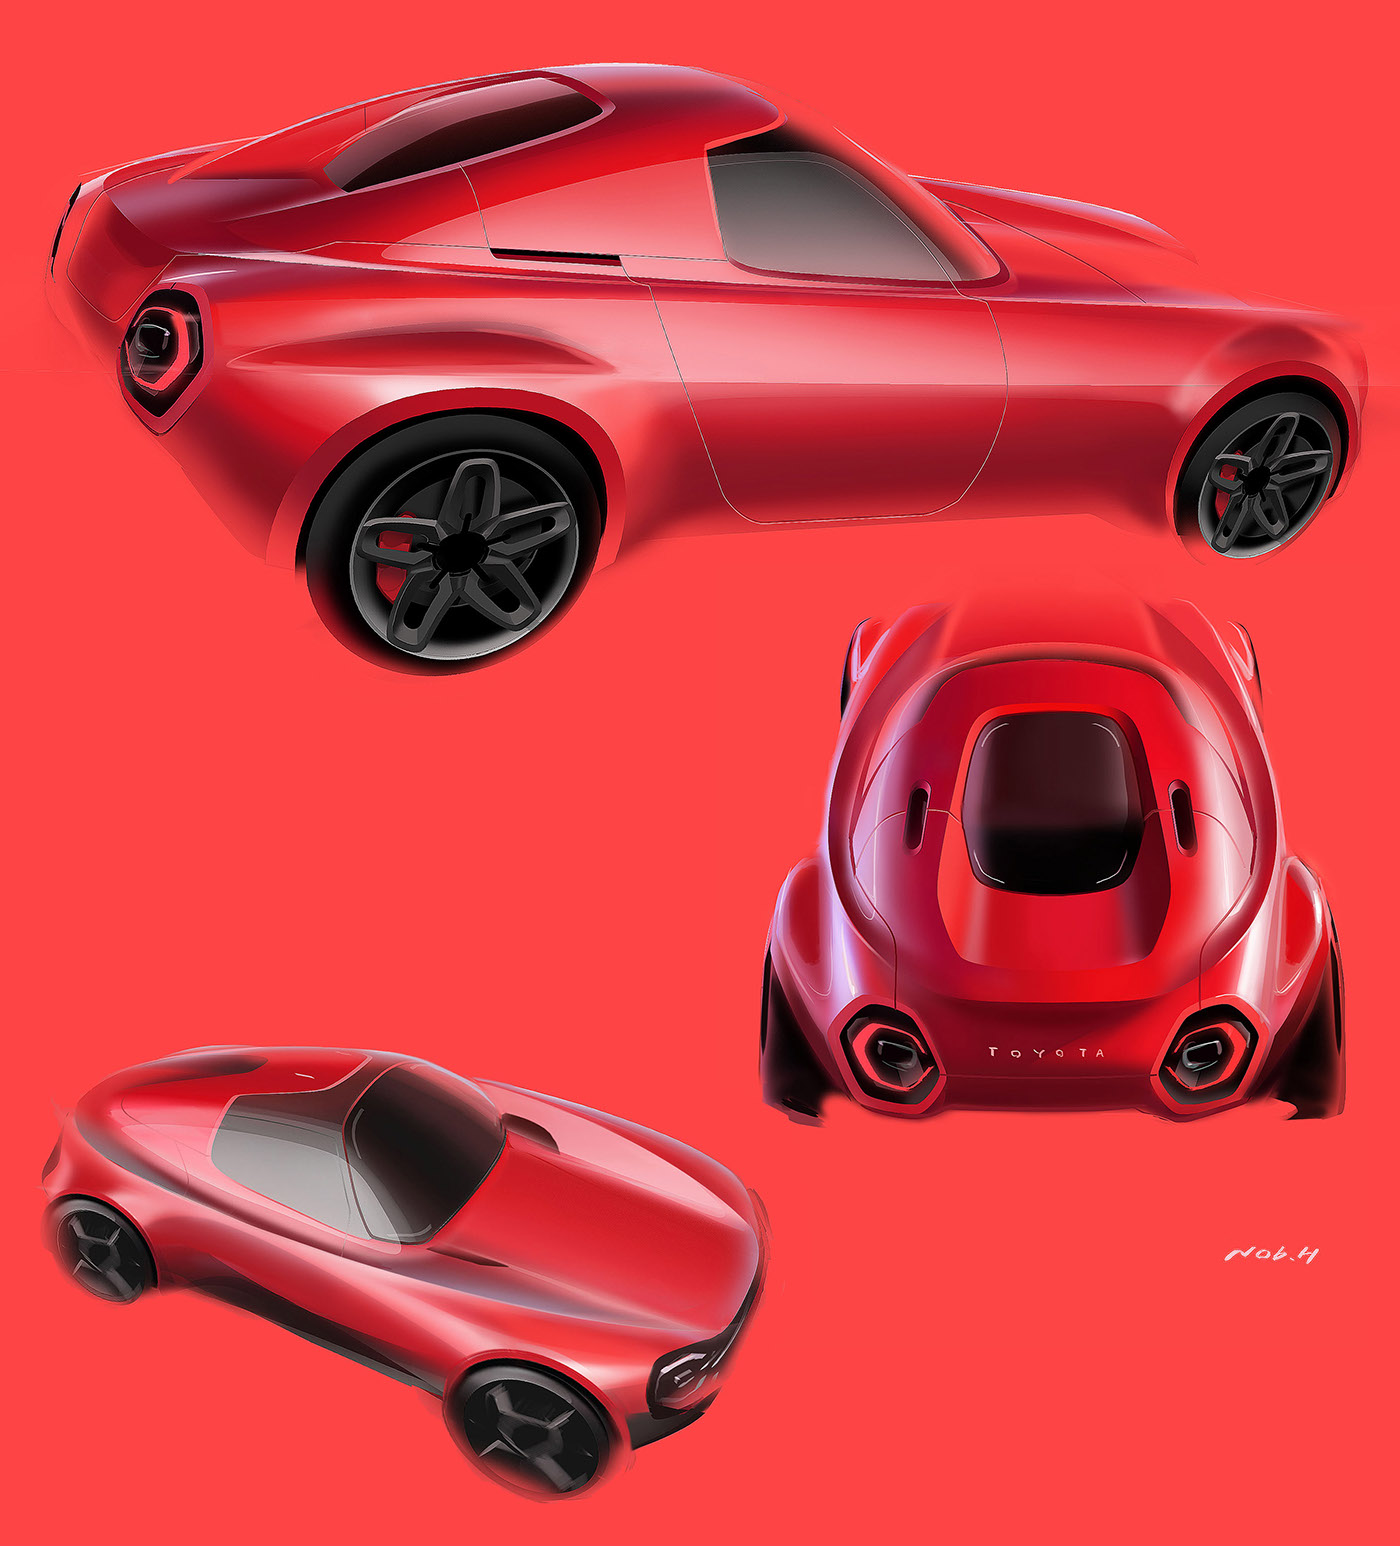 TOYOTA PUBLIC SPORTS CONCEPT on